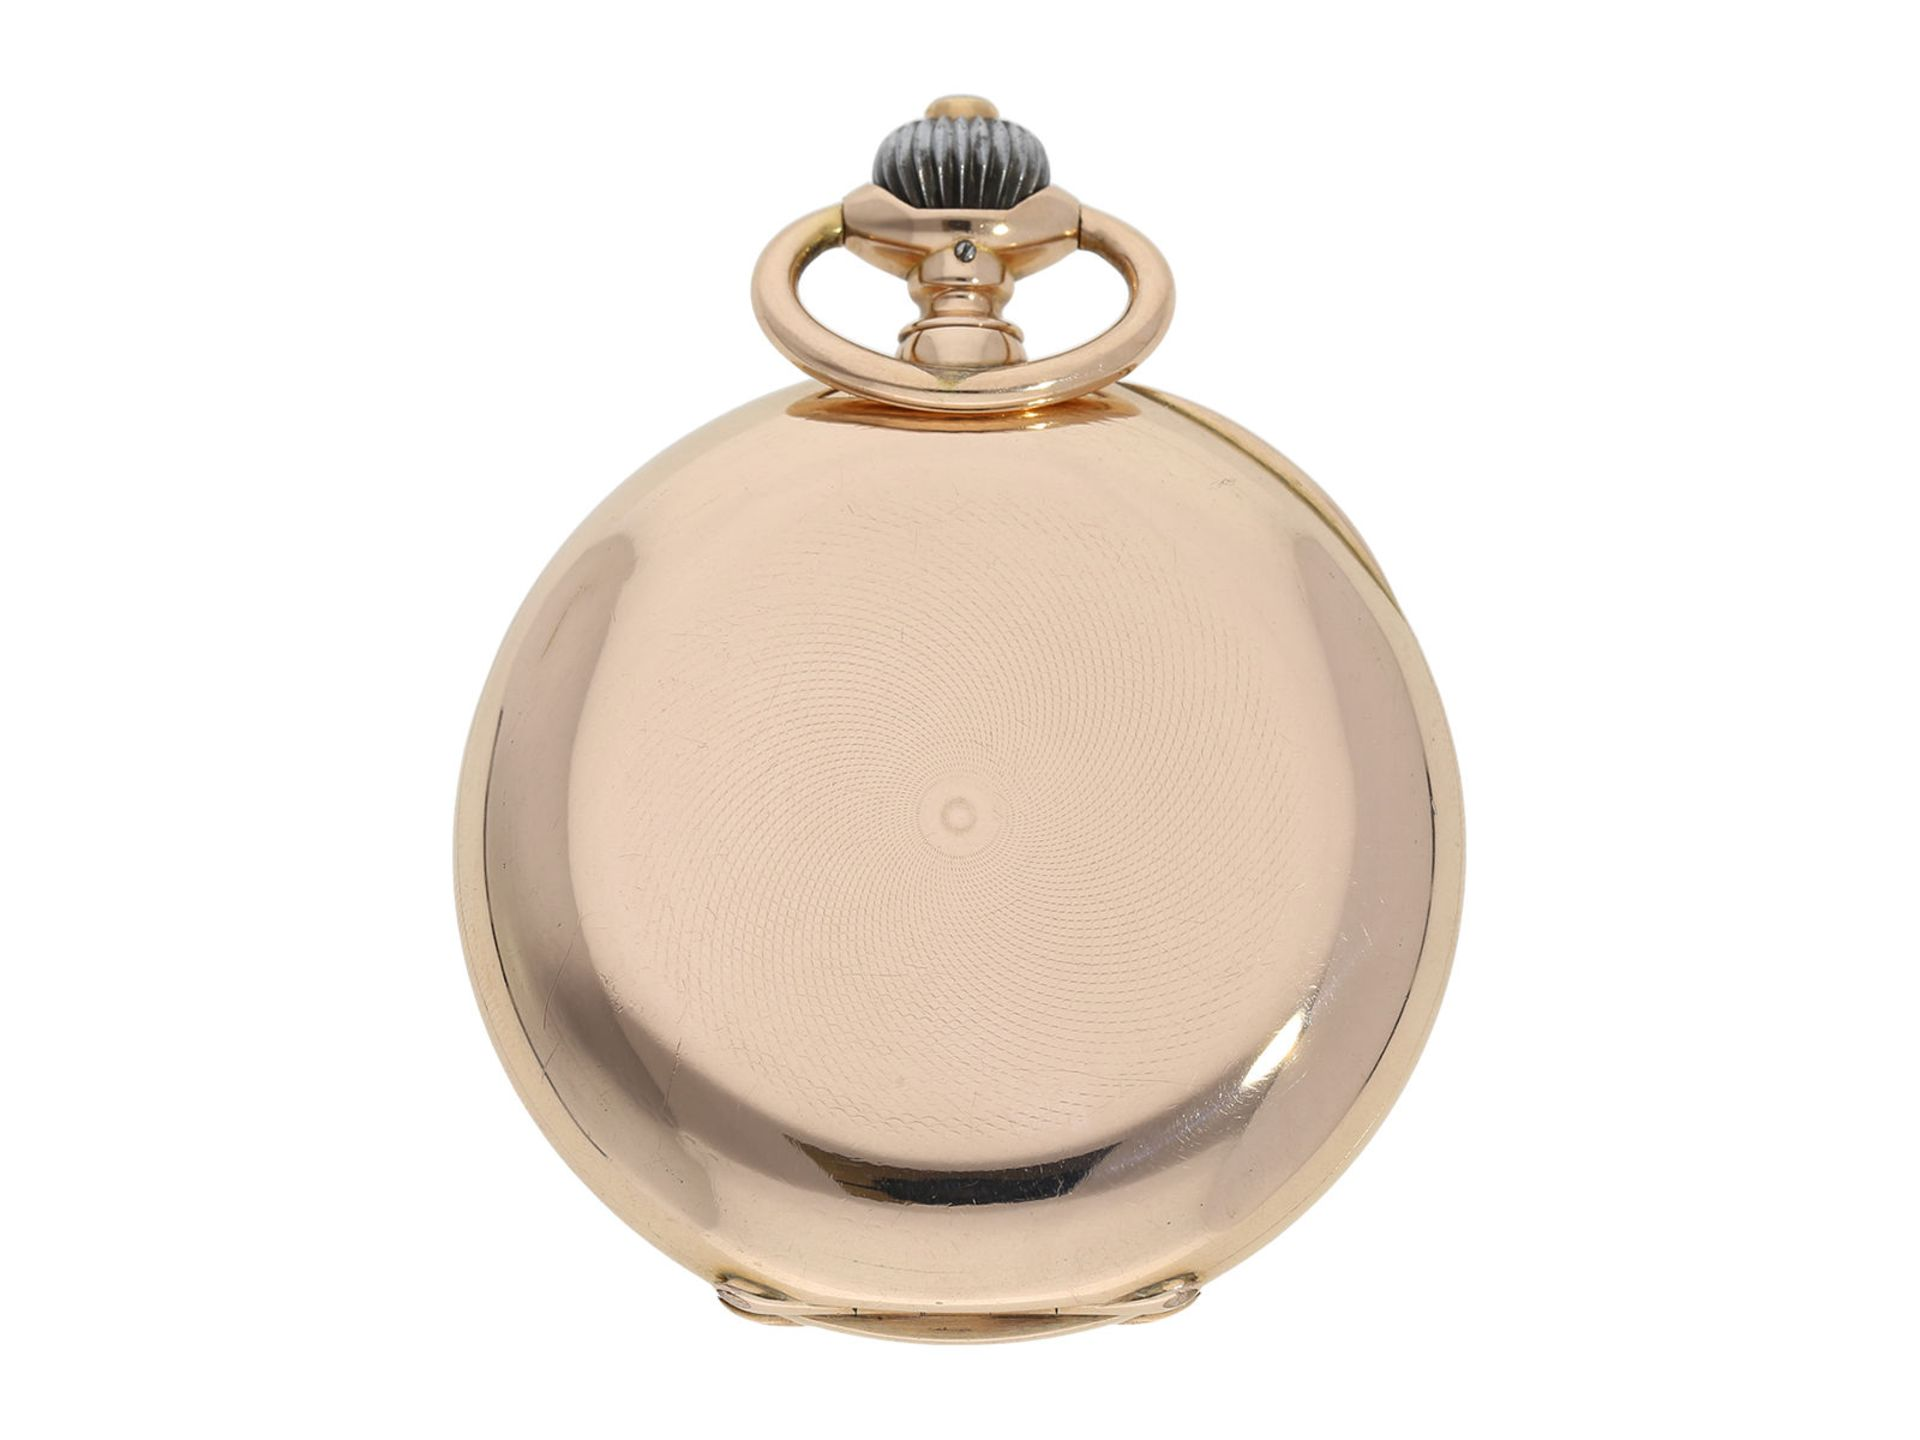 Pocket watch: particularly heavy and large, early pink gold hunting case watch, IWC Schaffhausen, - Bild 6 aus 6